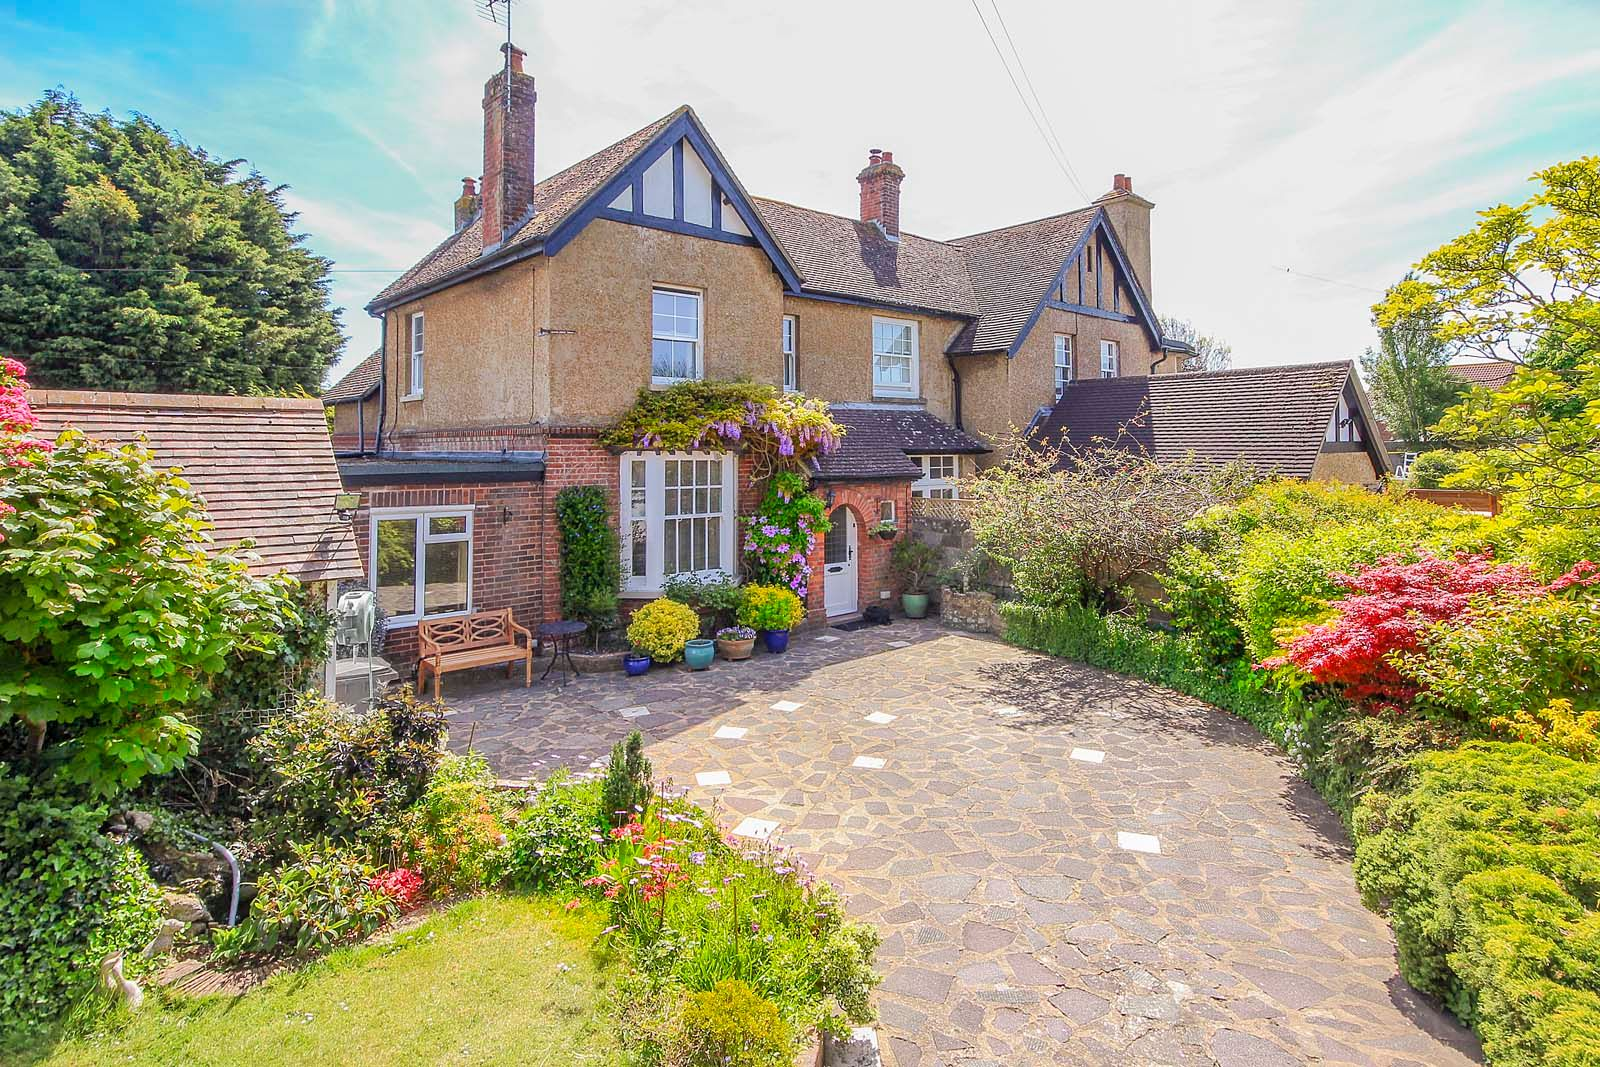 4 bed house for sale in North Lane - Property Image 1